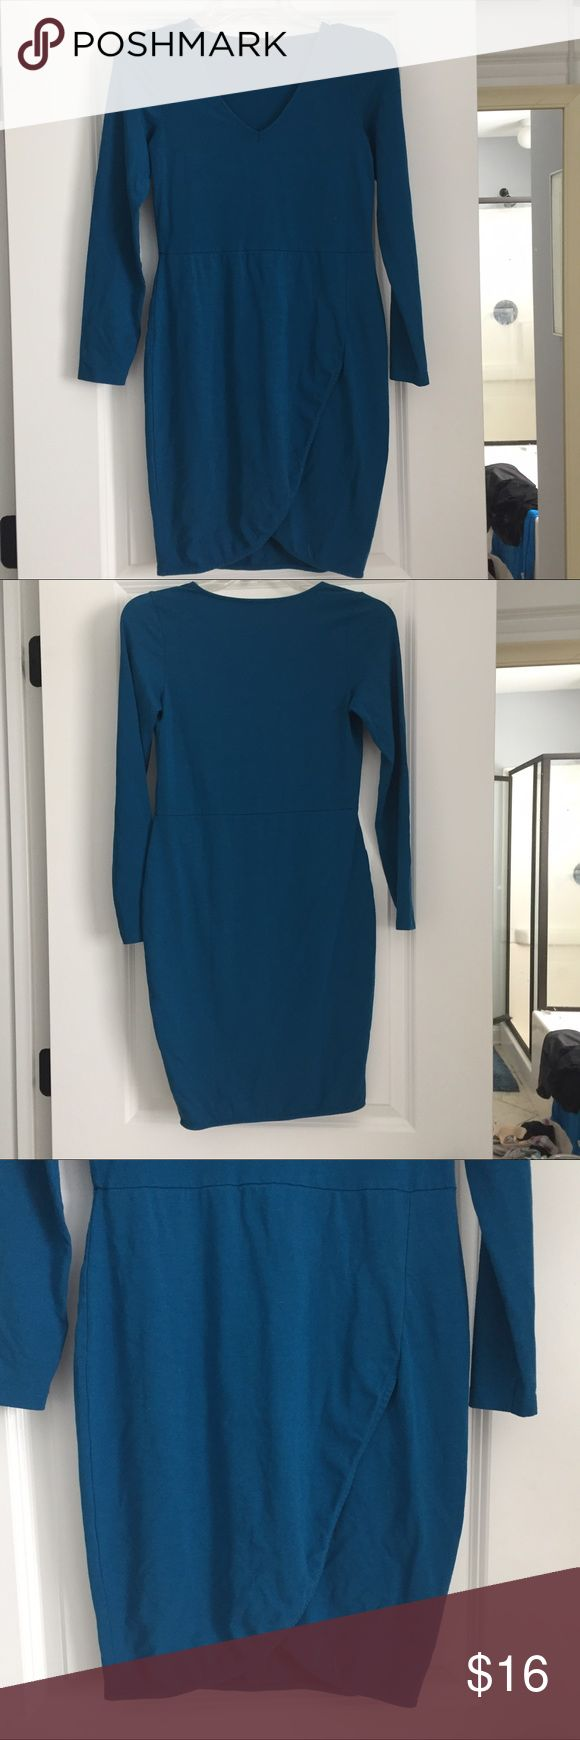 "ASOS long sleeve tulip hem dress ASOS. Size 6. Long sleeve, vee-neck, asymmetrical tulip like skirt hem. Pullover style. Great color - medium teal blue. Great one piece sophisticated dressing from board room to date night. No flaws. Great condition. 33"" shoulder to hem. See pics for fabric content tag. Asos Dresses Midi"